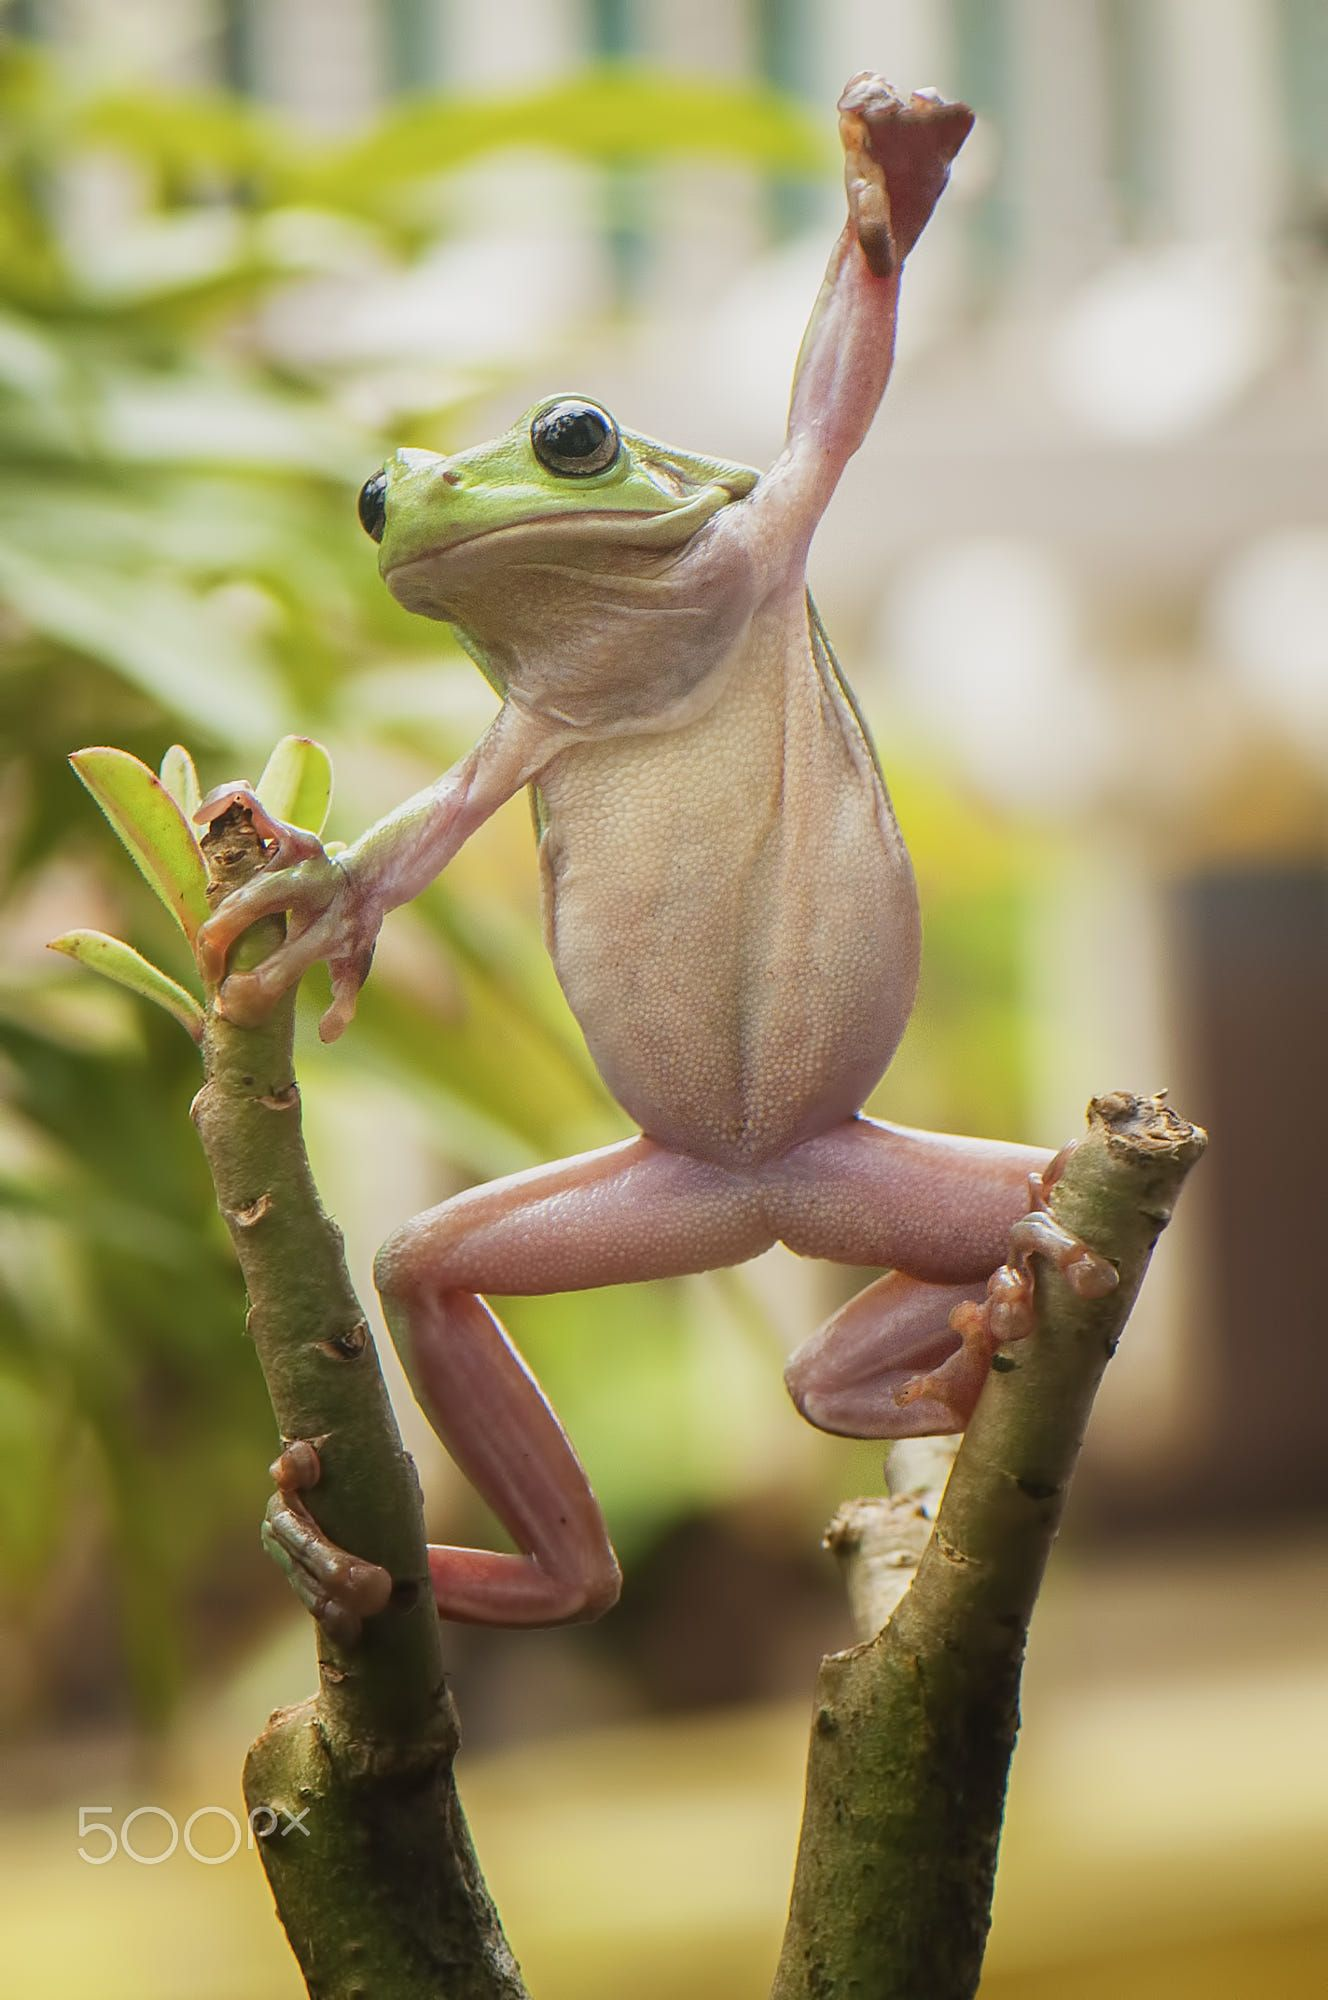 I'm the King of the World! Woop woop! Cute frogs, Frog